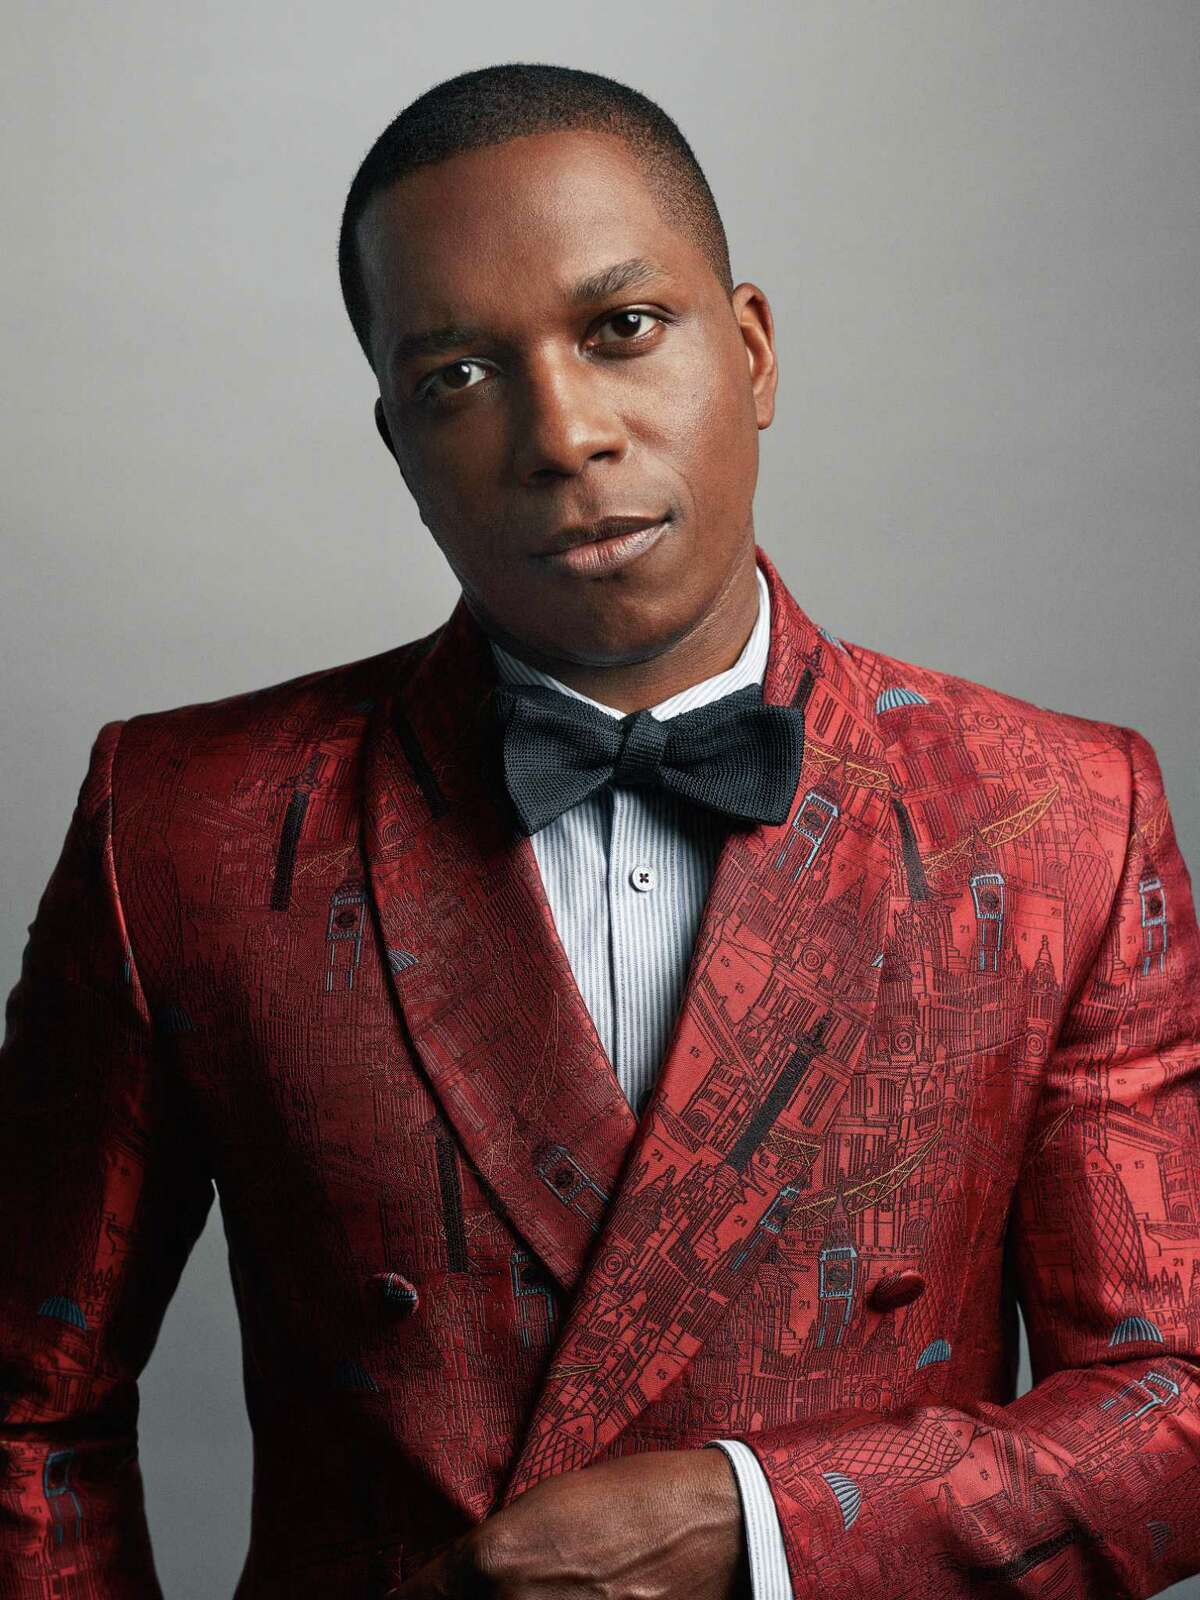 ODOM AT GALA: Tony Award winner Leslie Odom, Jr. will perform at Long Wharf Theatre with his five-piece band doing pop and jazz standards along with tunes from his Broadway roles Monday, June 4, as part of the theater's 2018 Gala. The event begins at 6 p.m. with a cocktail reception; Odom will perform at 8 p.m. on the Claire Tow Stage in the C. Newton Schenck III Theatre.For more information or to reserve tickets, contact Kathy Cihi at kathy.cihi@longwharf.org or visit longwharf.org.